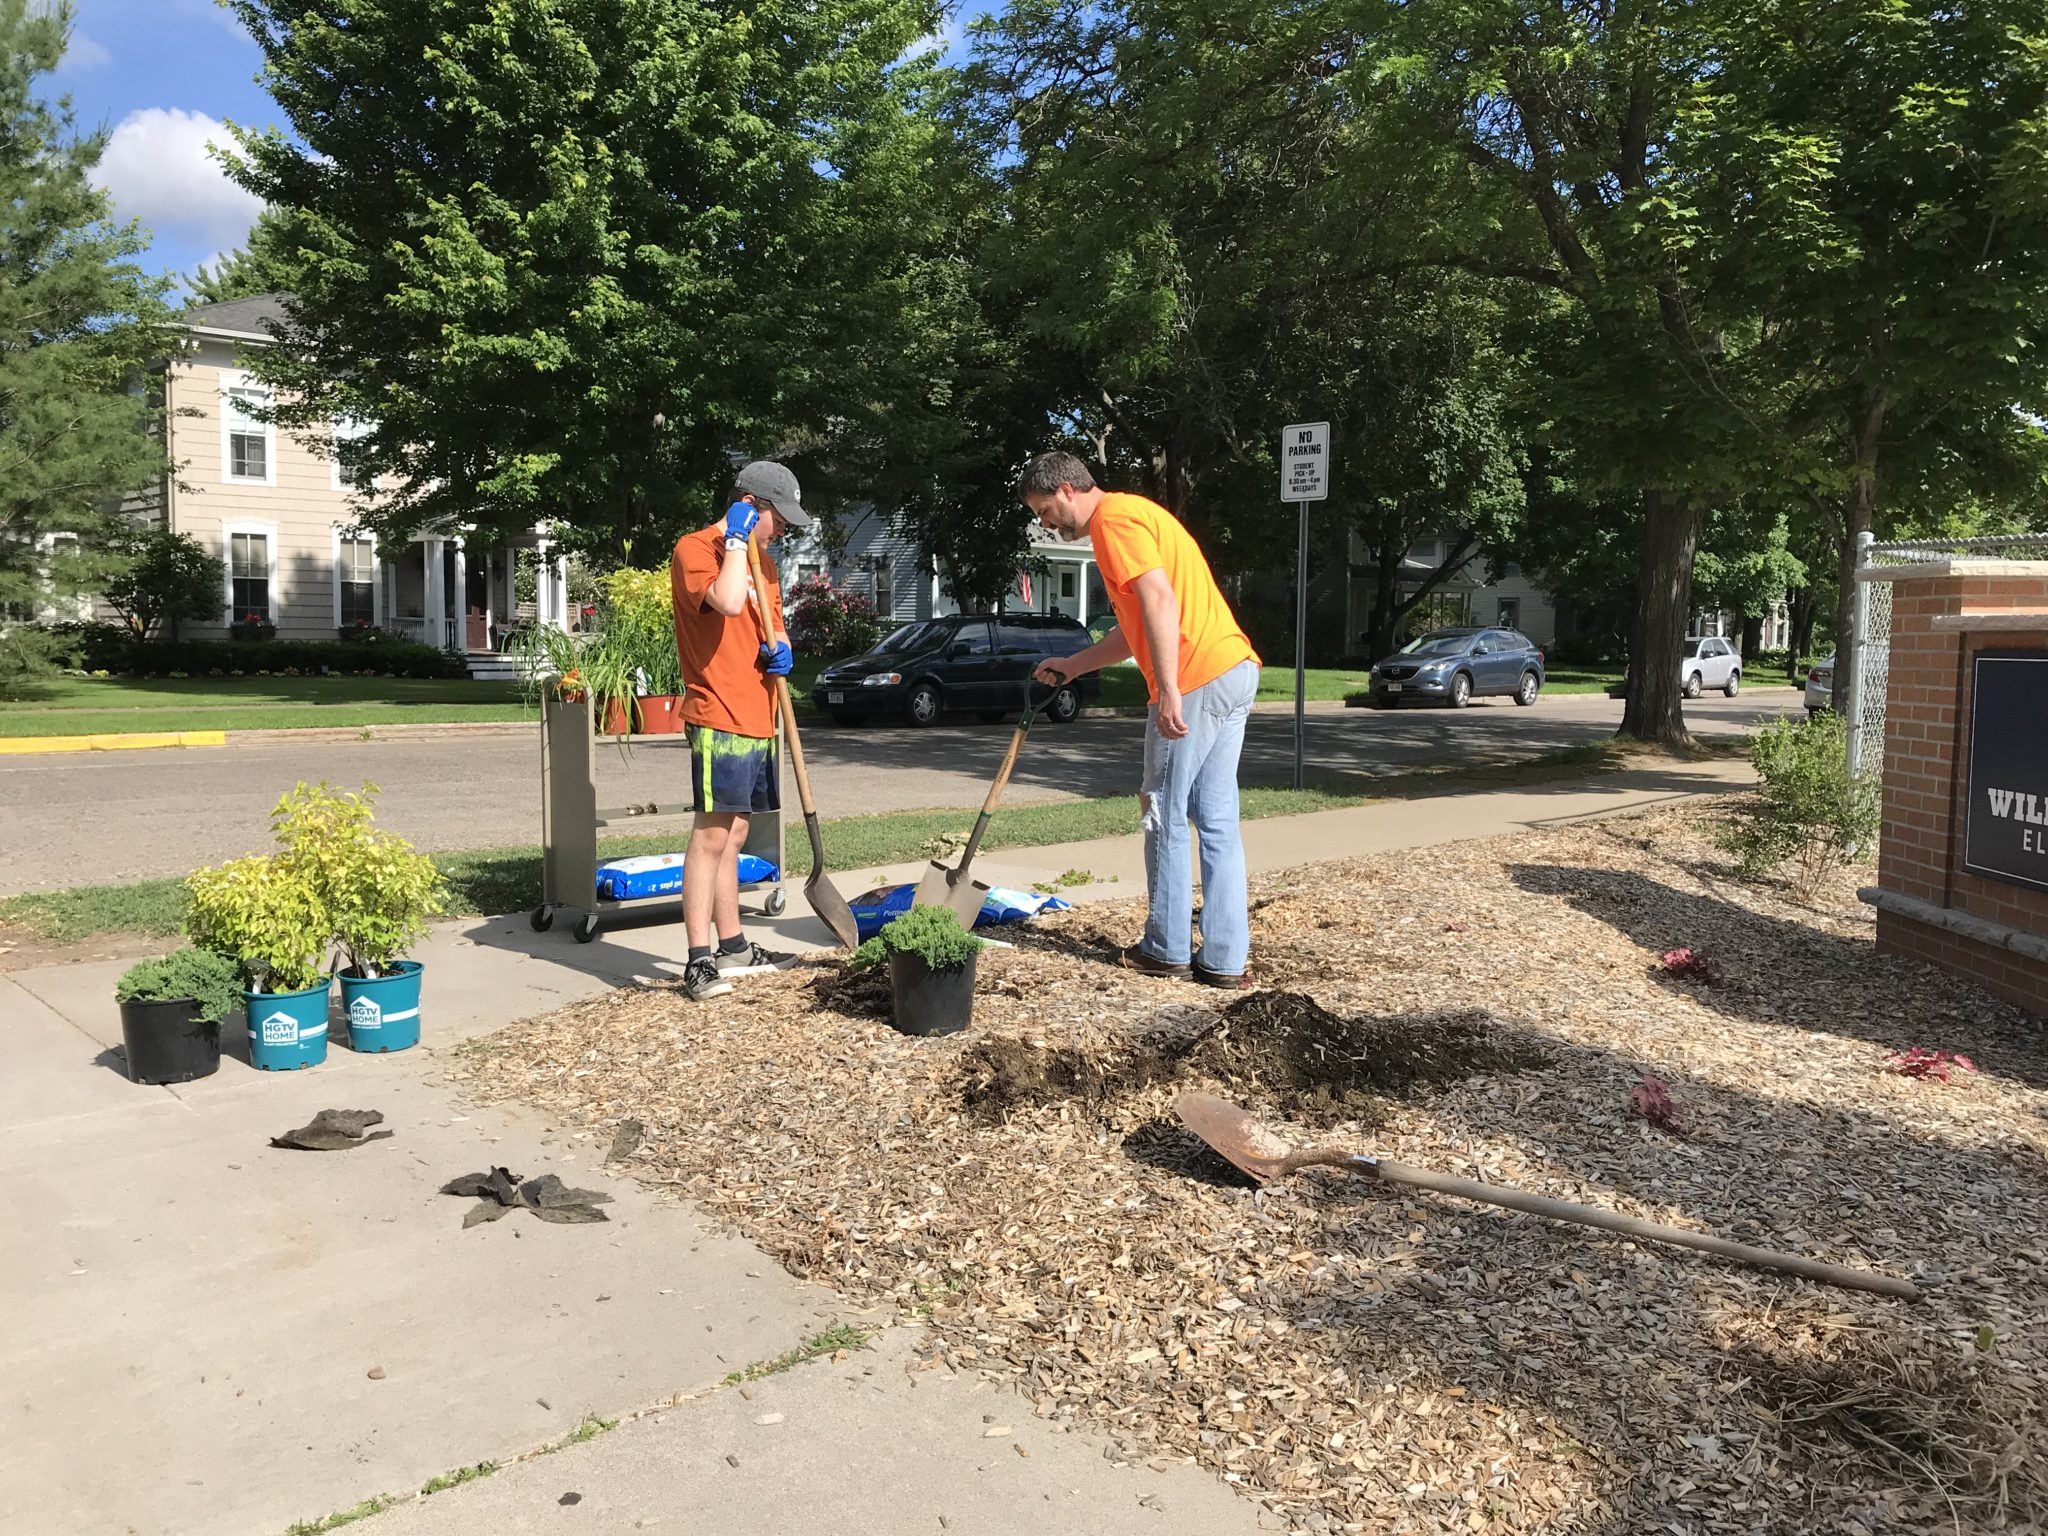 Two volunteers are planting shrubs near the Willow River Elementary School sign.